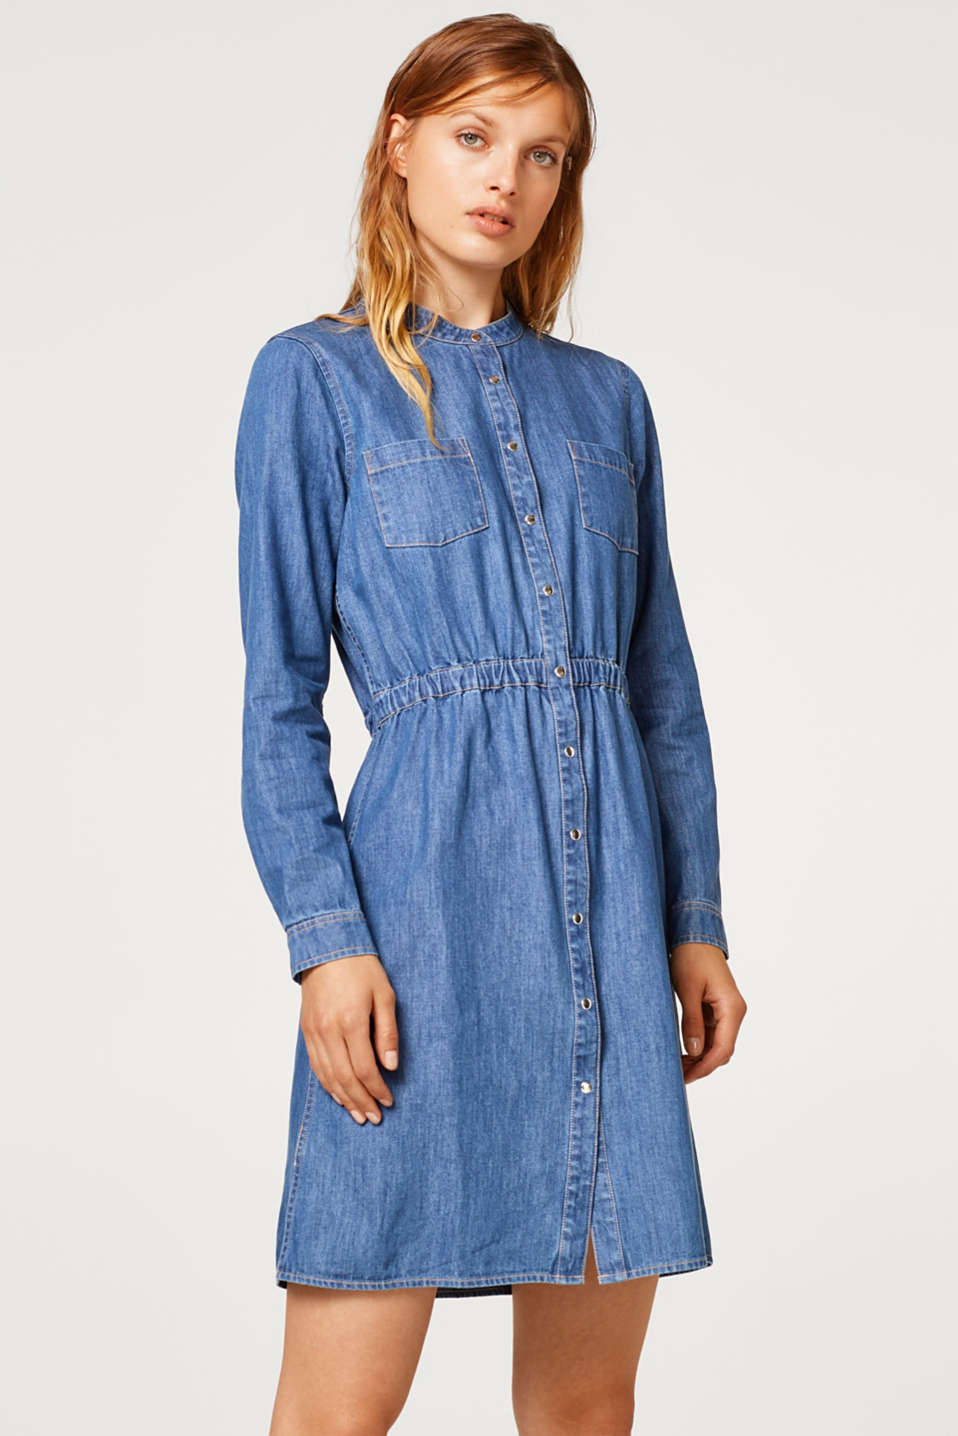 edc - Denim dress in a shirt style, 100% cotton